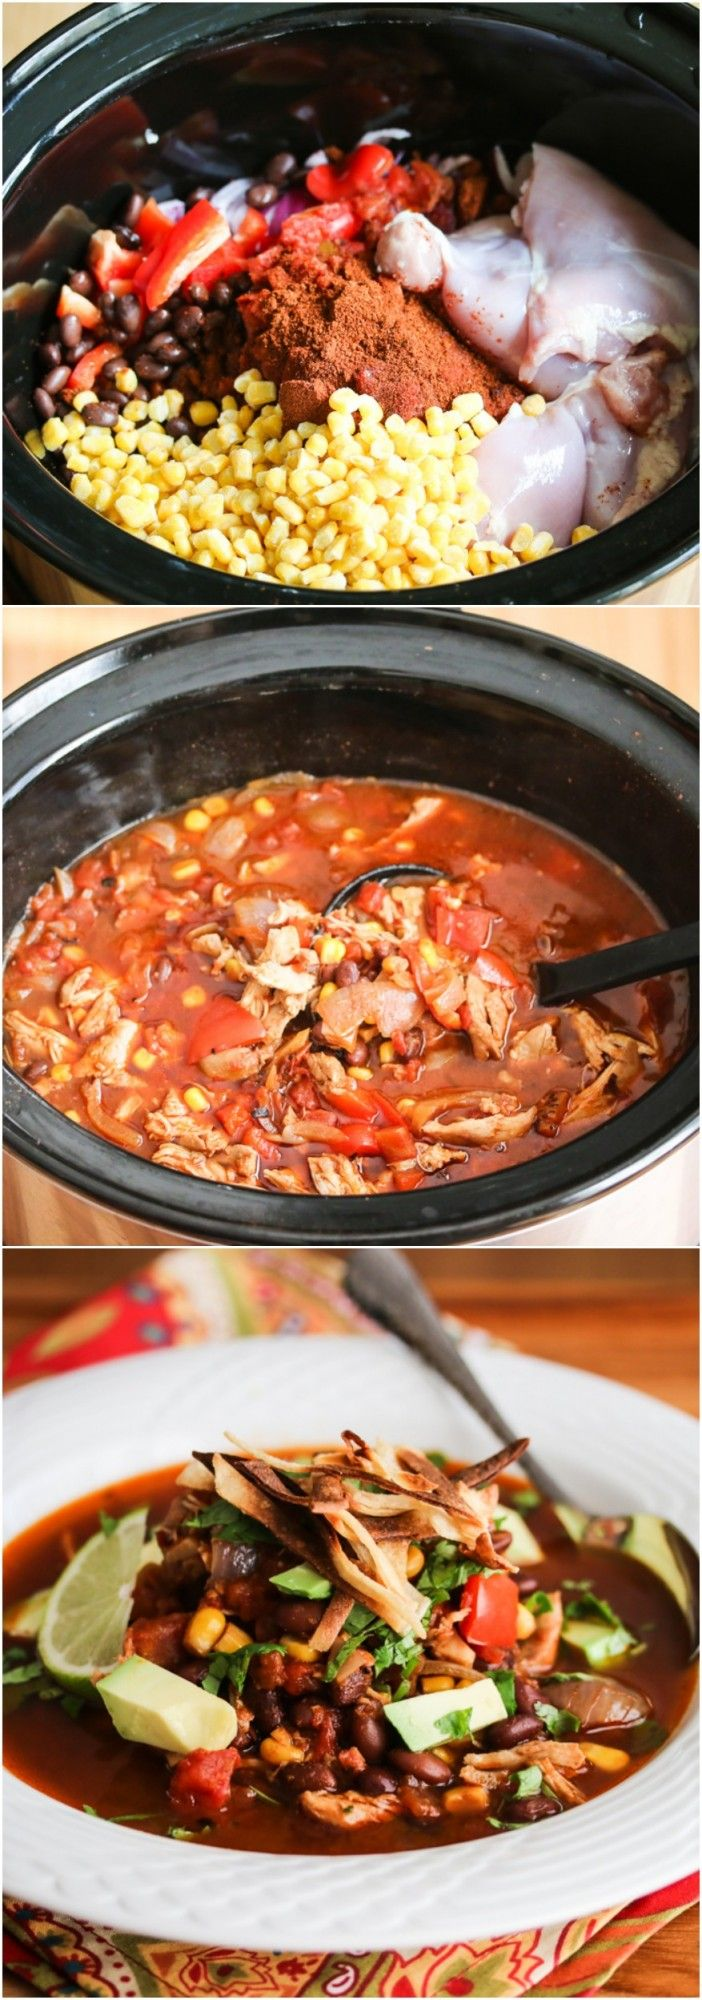 Slow Cooker Chicken Chili Tortilla Soup - this is so easy to make, perfect for a cold winter day.